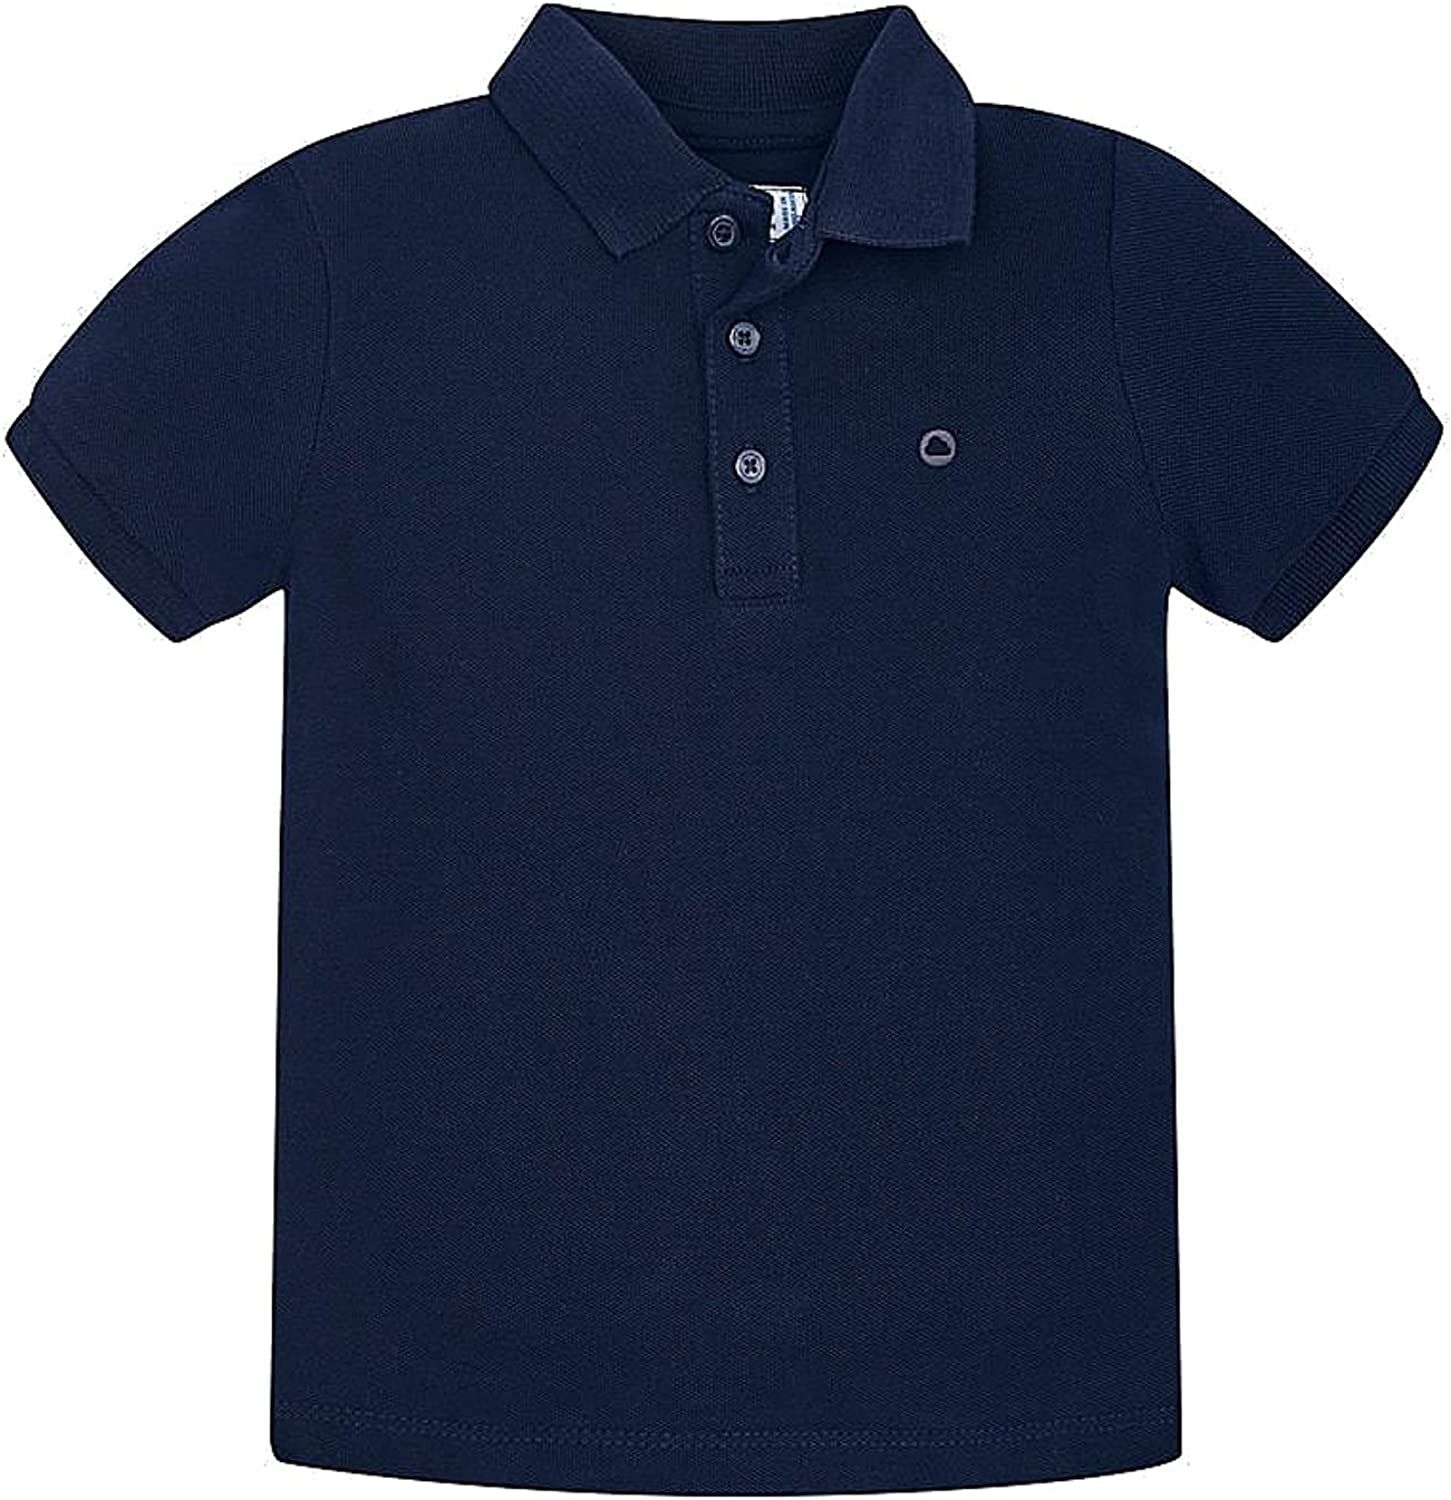 Mayoral - Basic s/s Polo for Boys - 0150, Navy